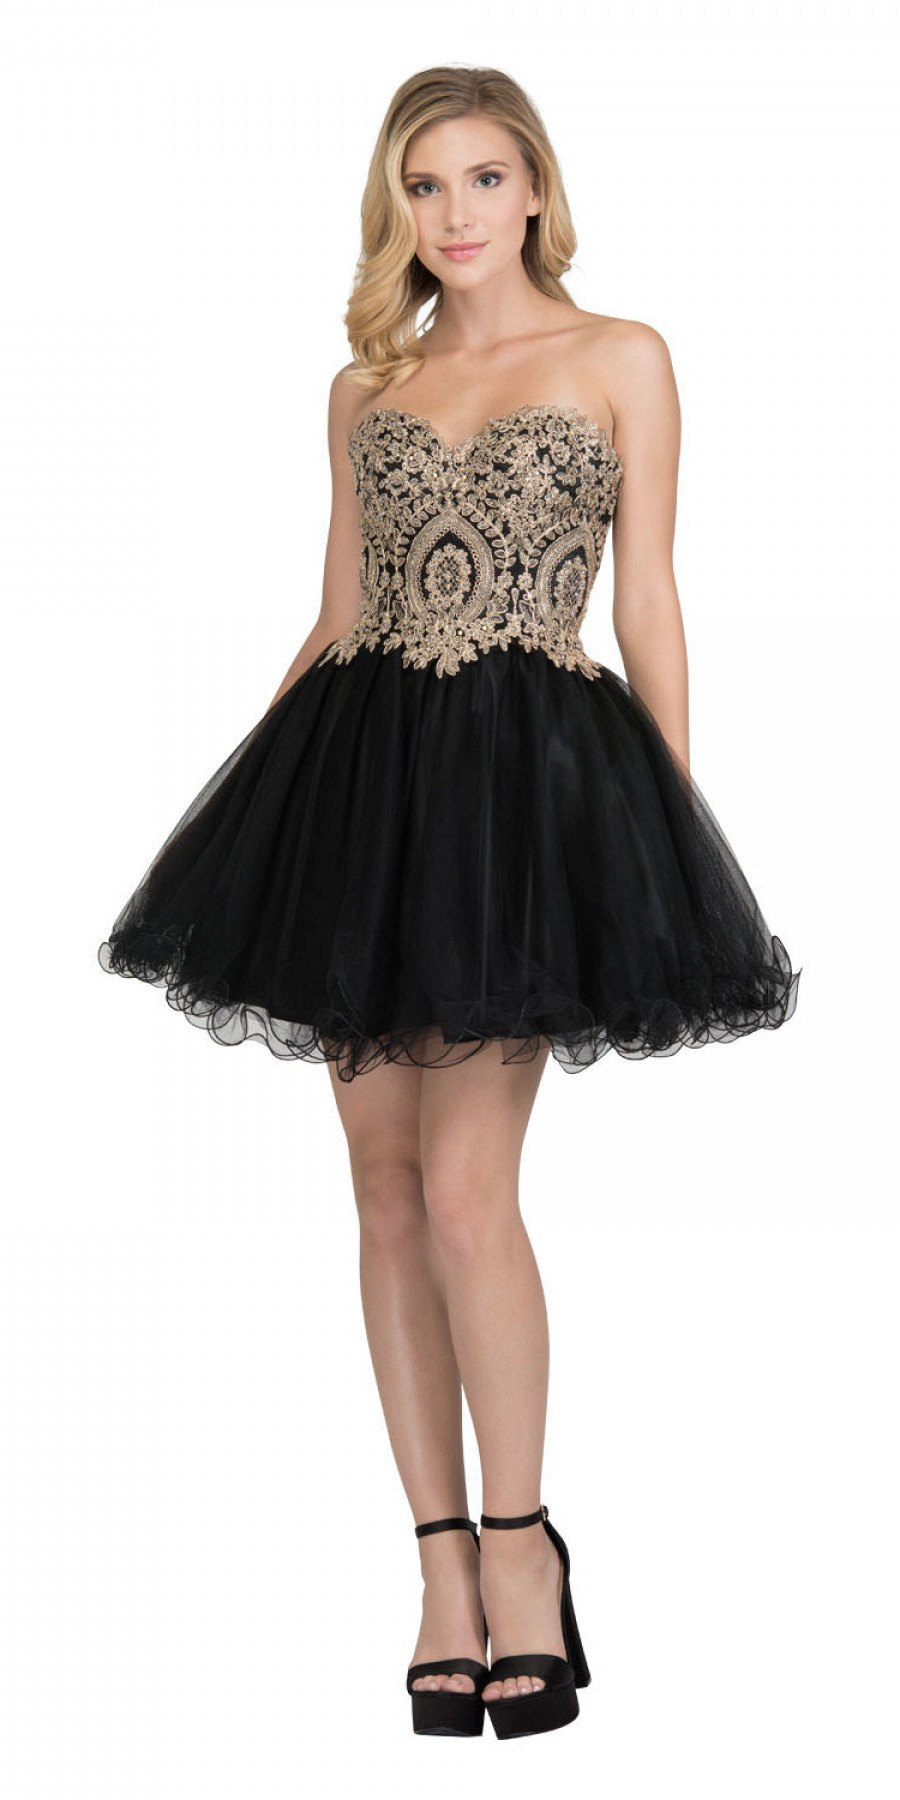 dc52a75f8e41 Black And Gold Homecoming Dresses - raveitsafe